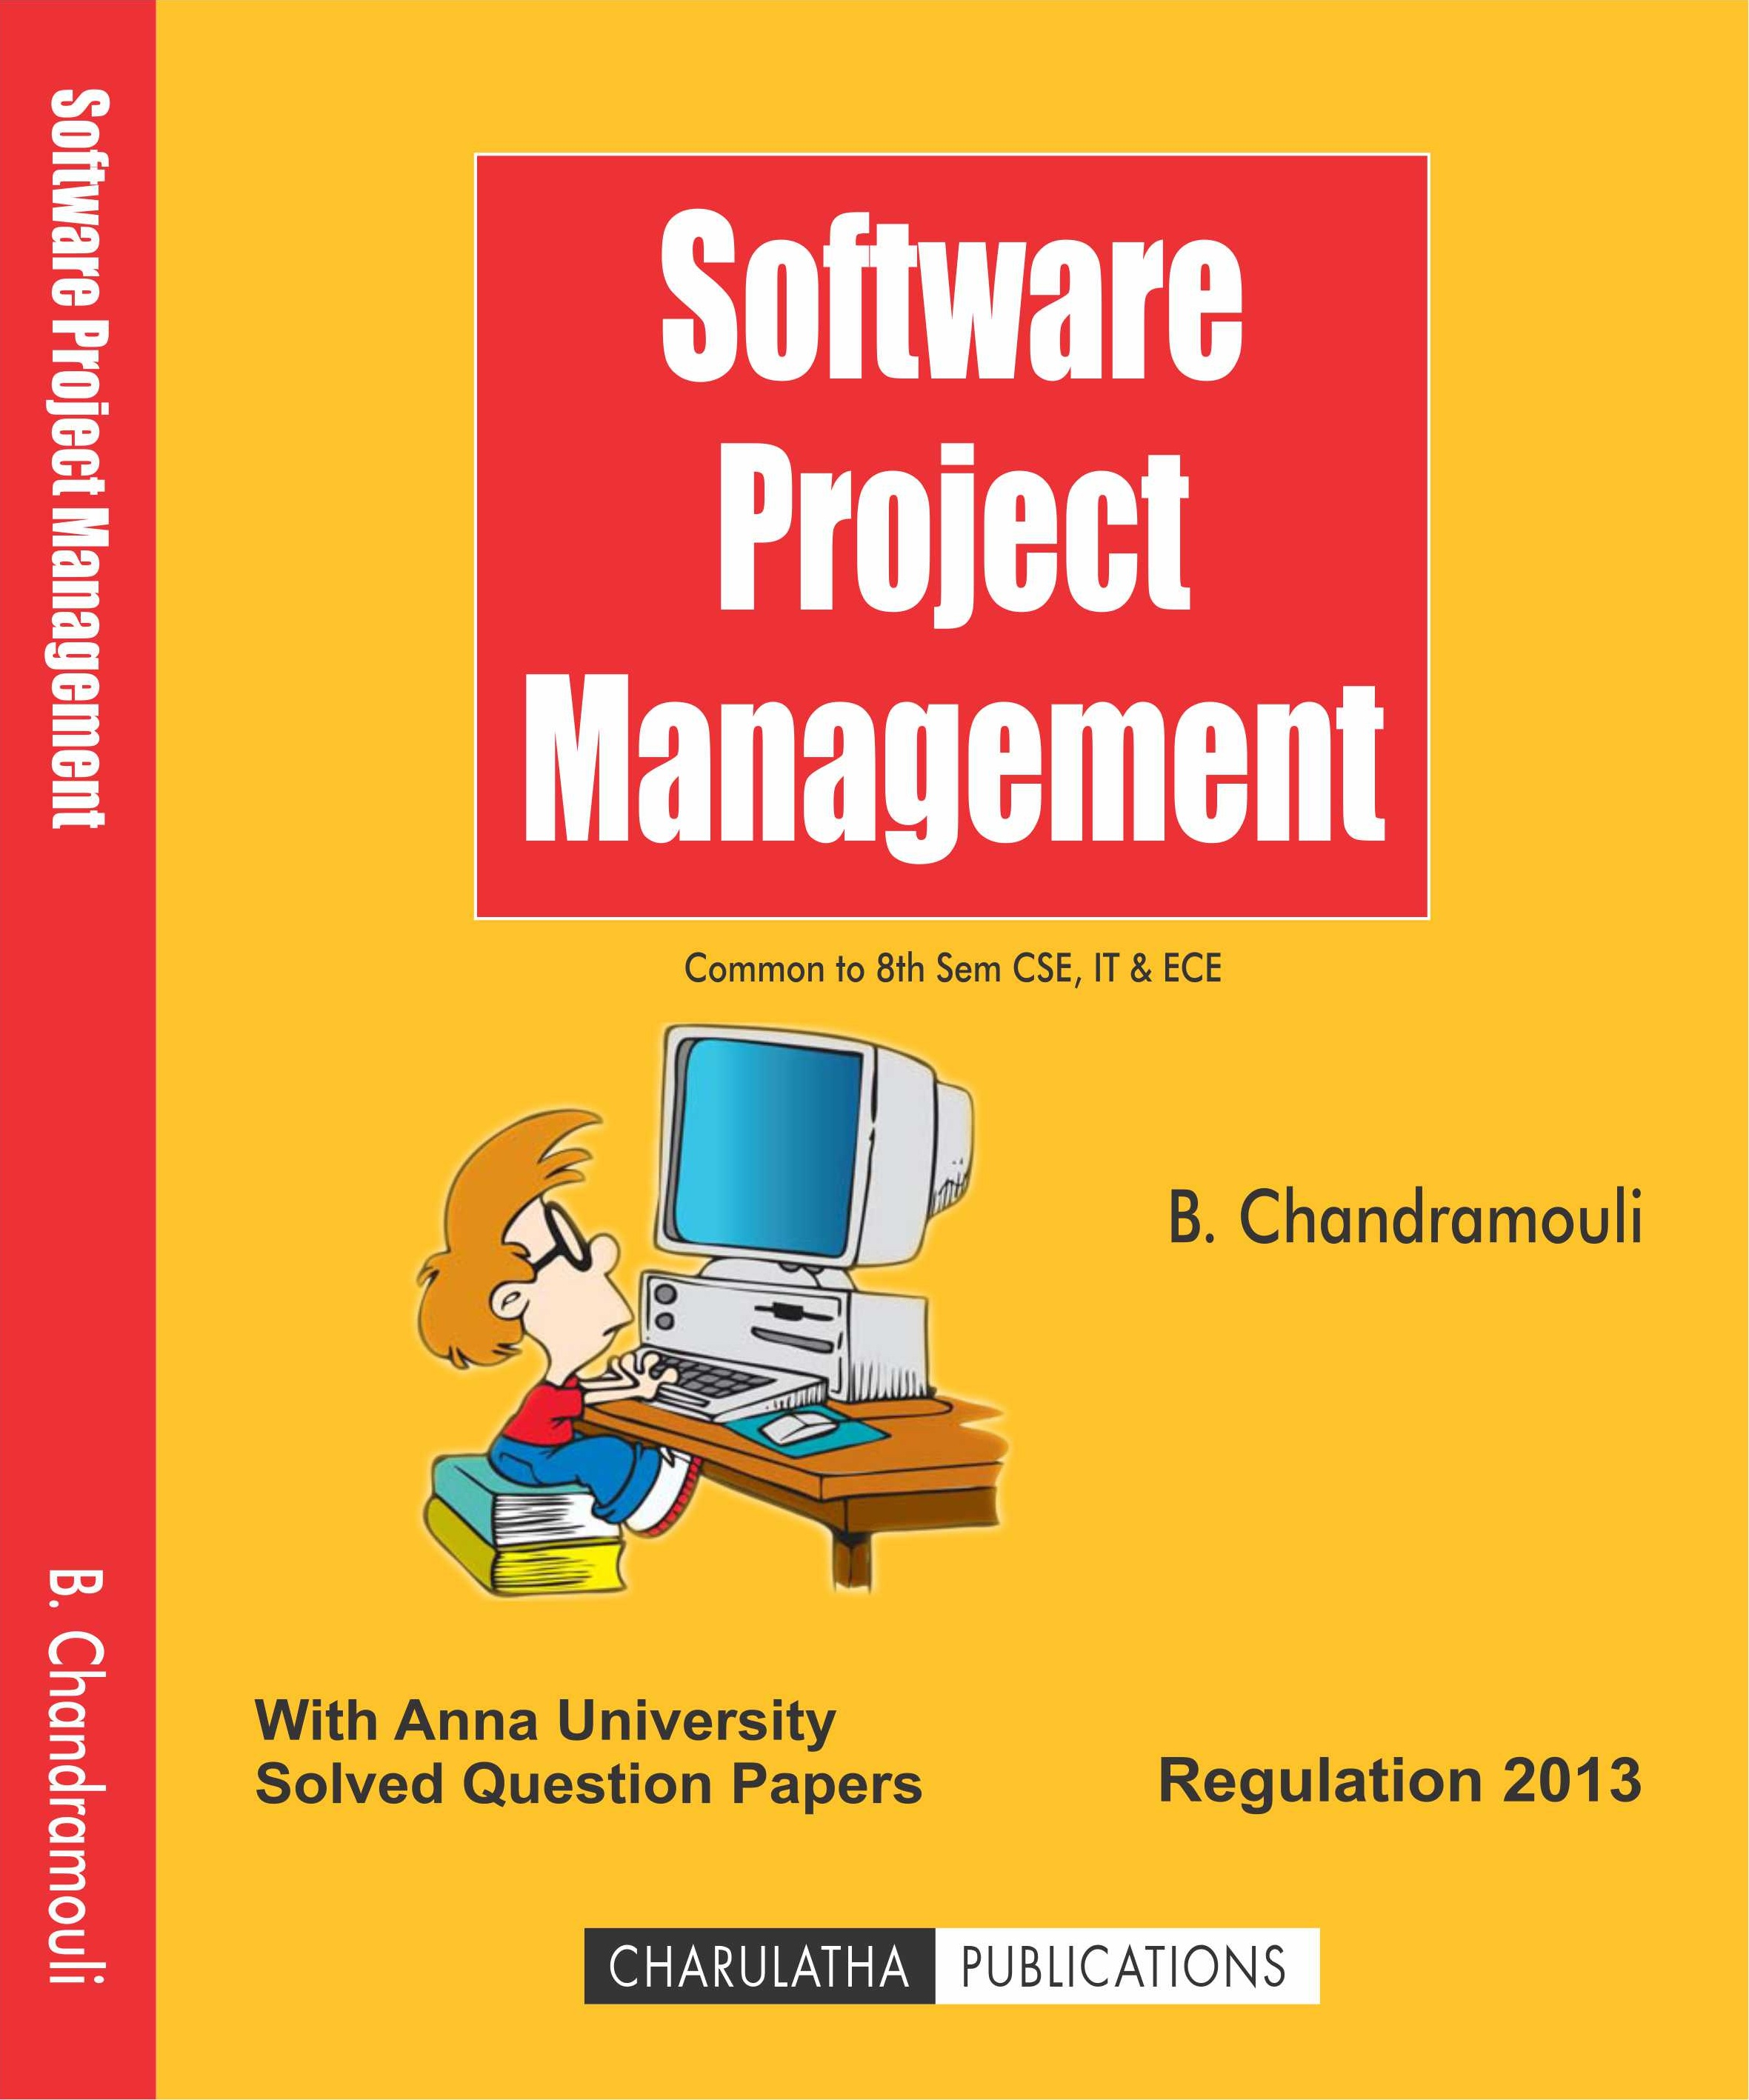 Charulatha Publications-SOFTWARE PROJECT MANAGEMENT (ISBN-13